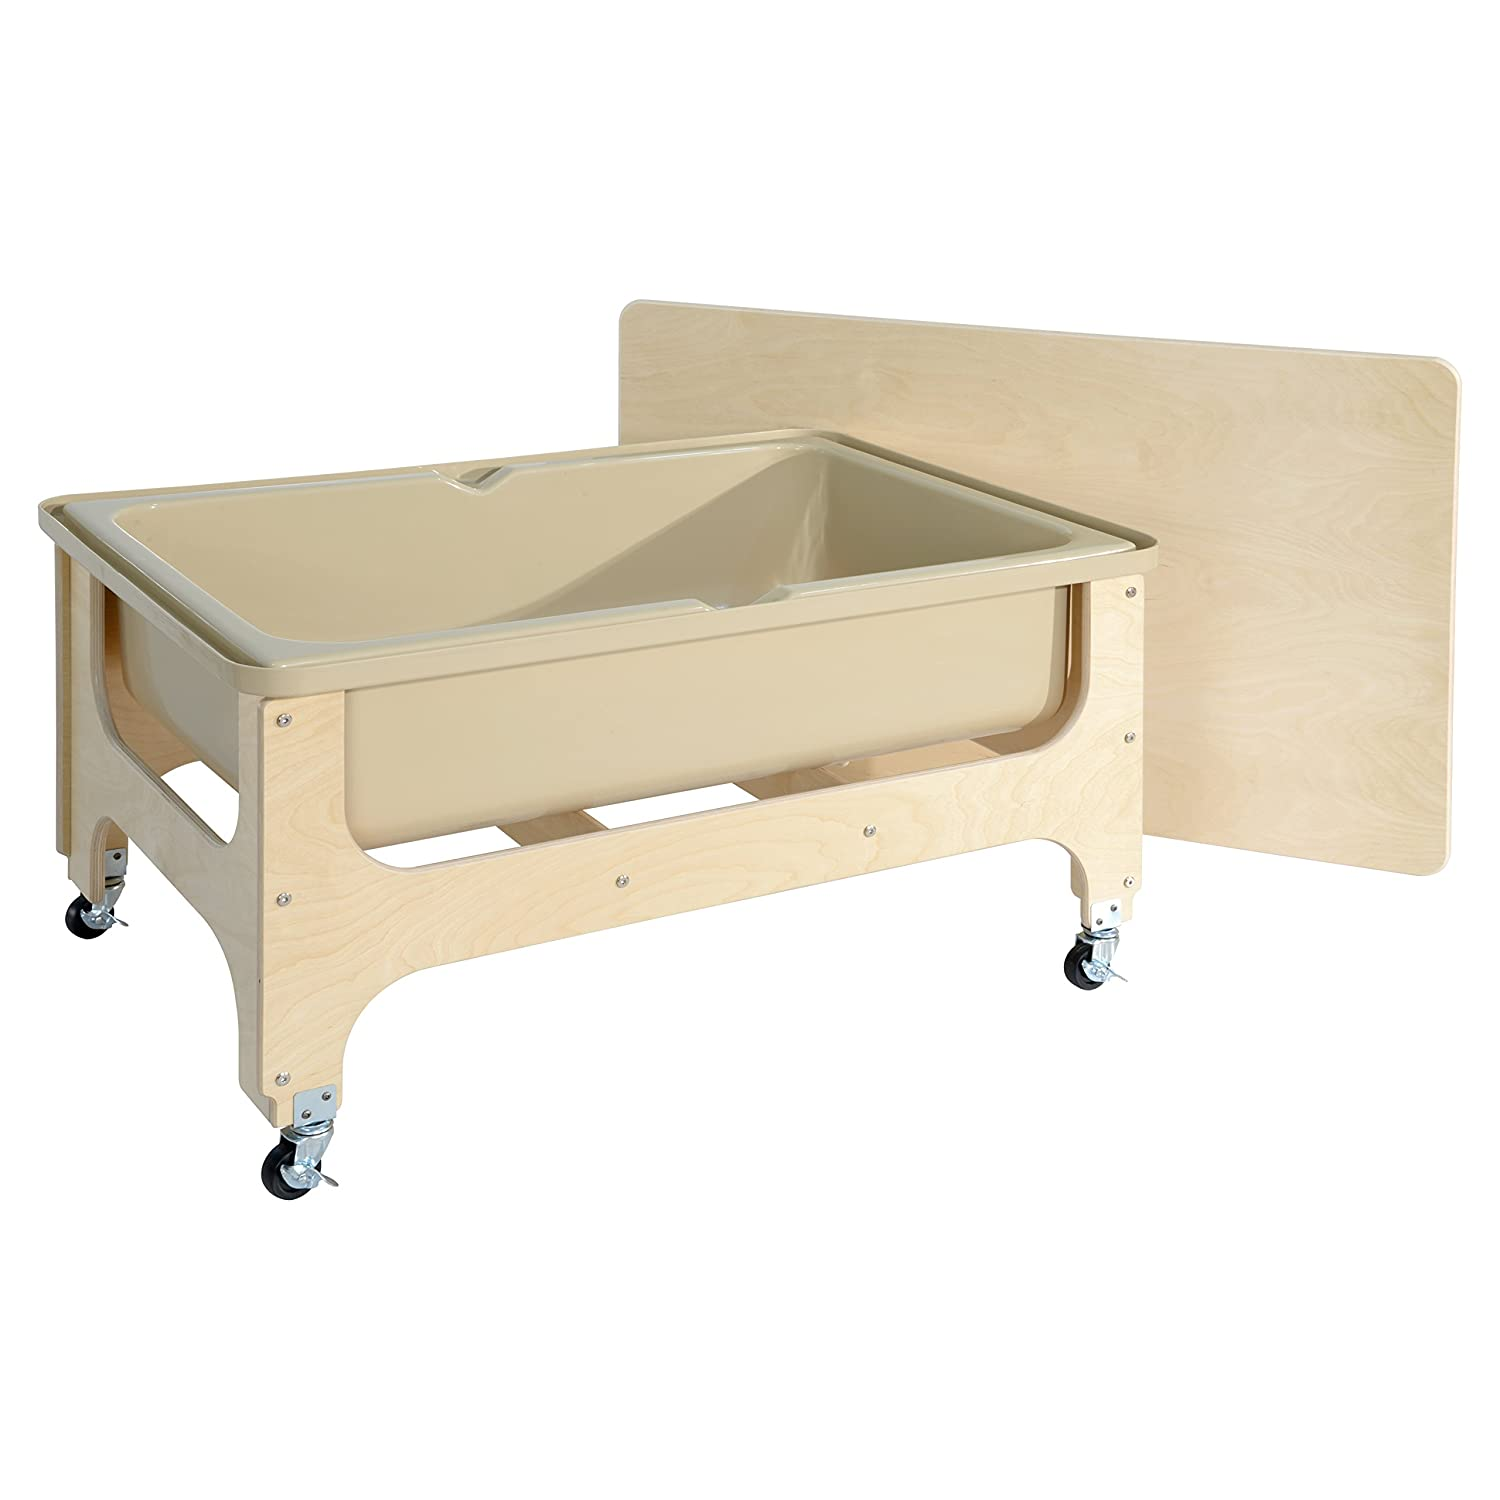 Wood Designs Lowest price challenge WD11875 - Tot Size Water Raleigh Mall Sand Table Lid with